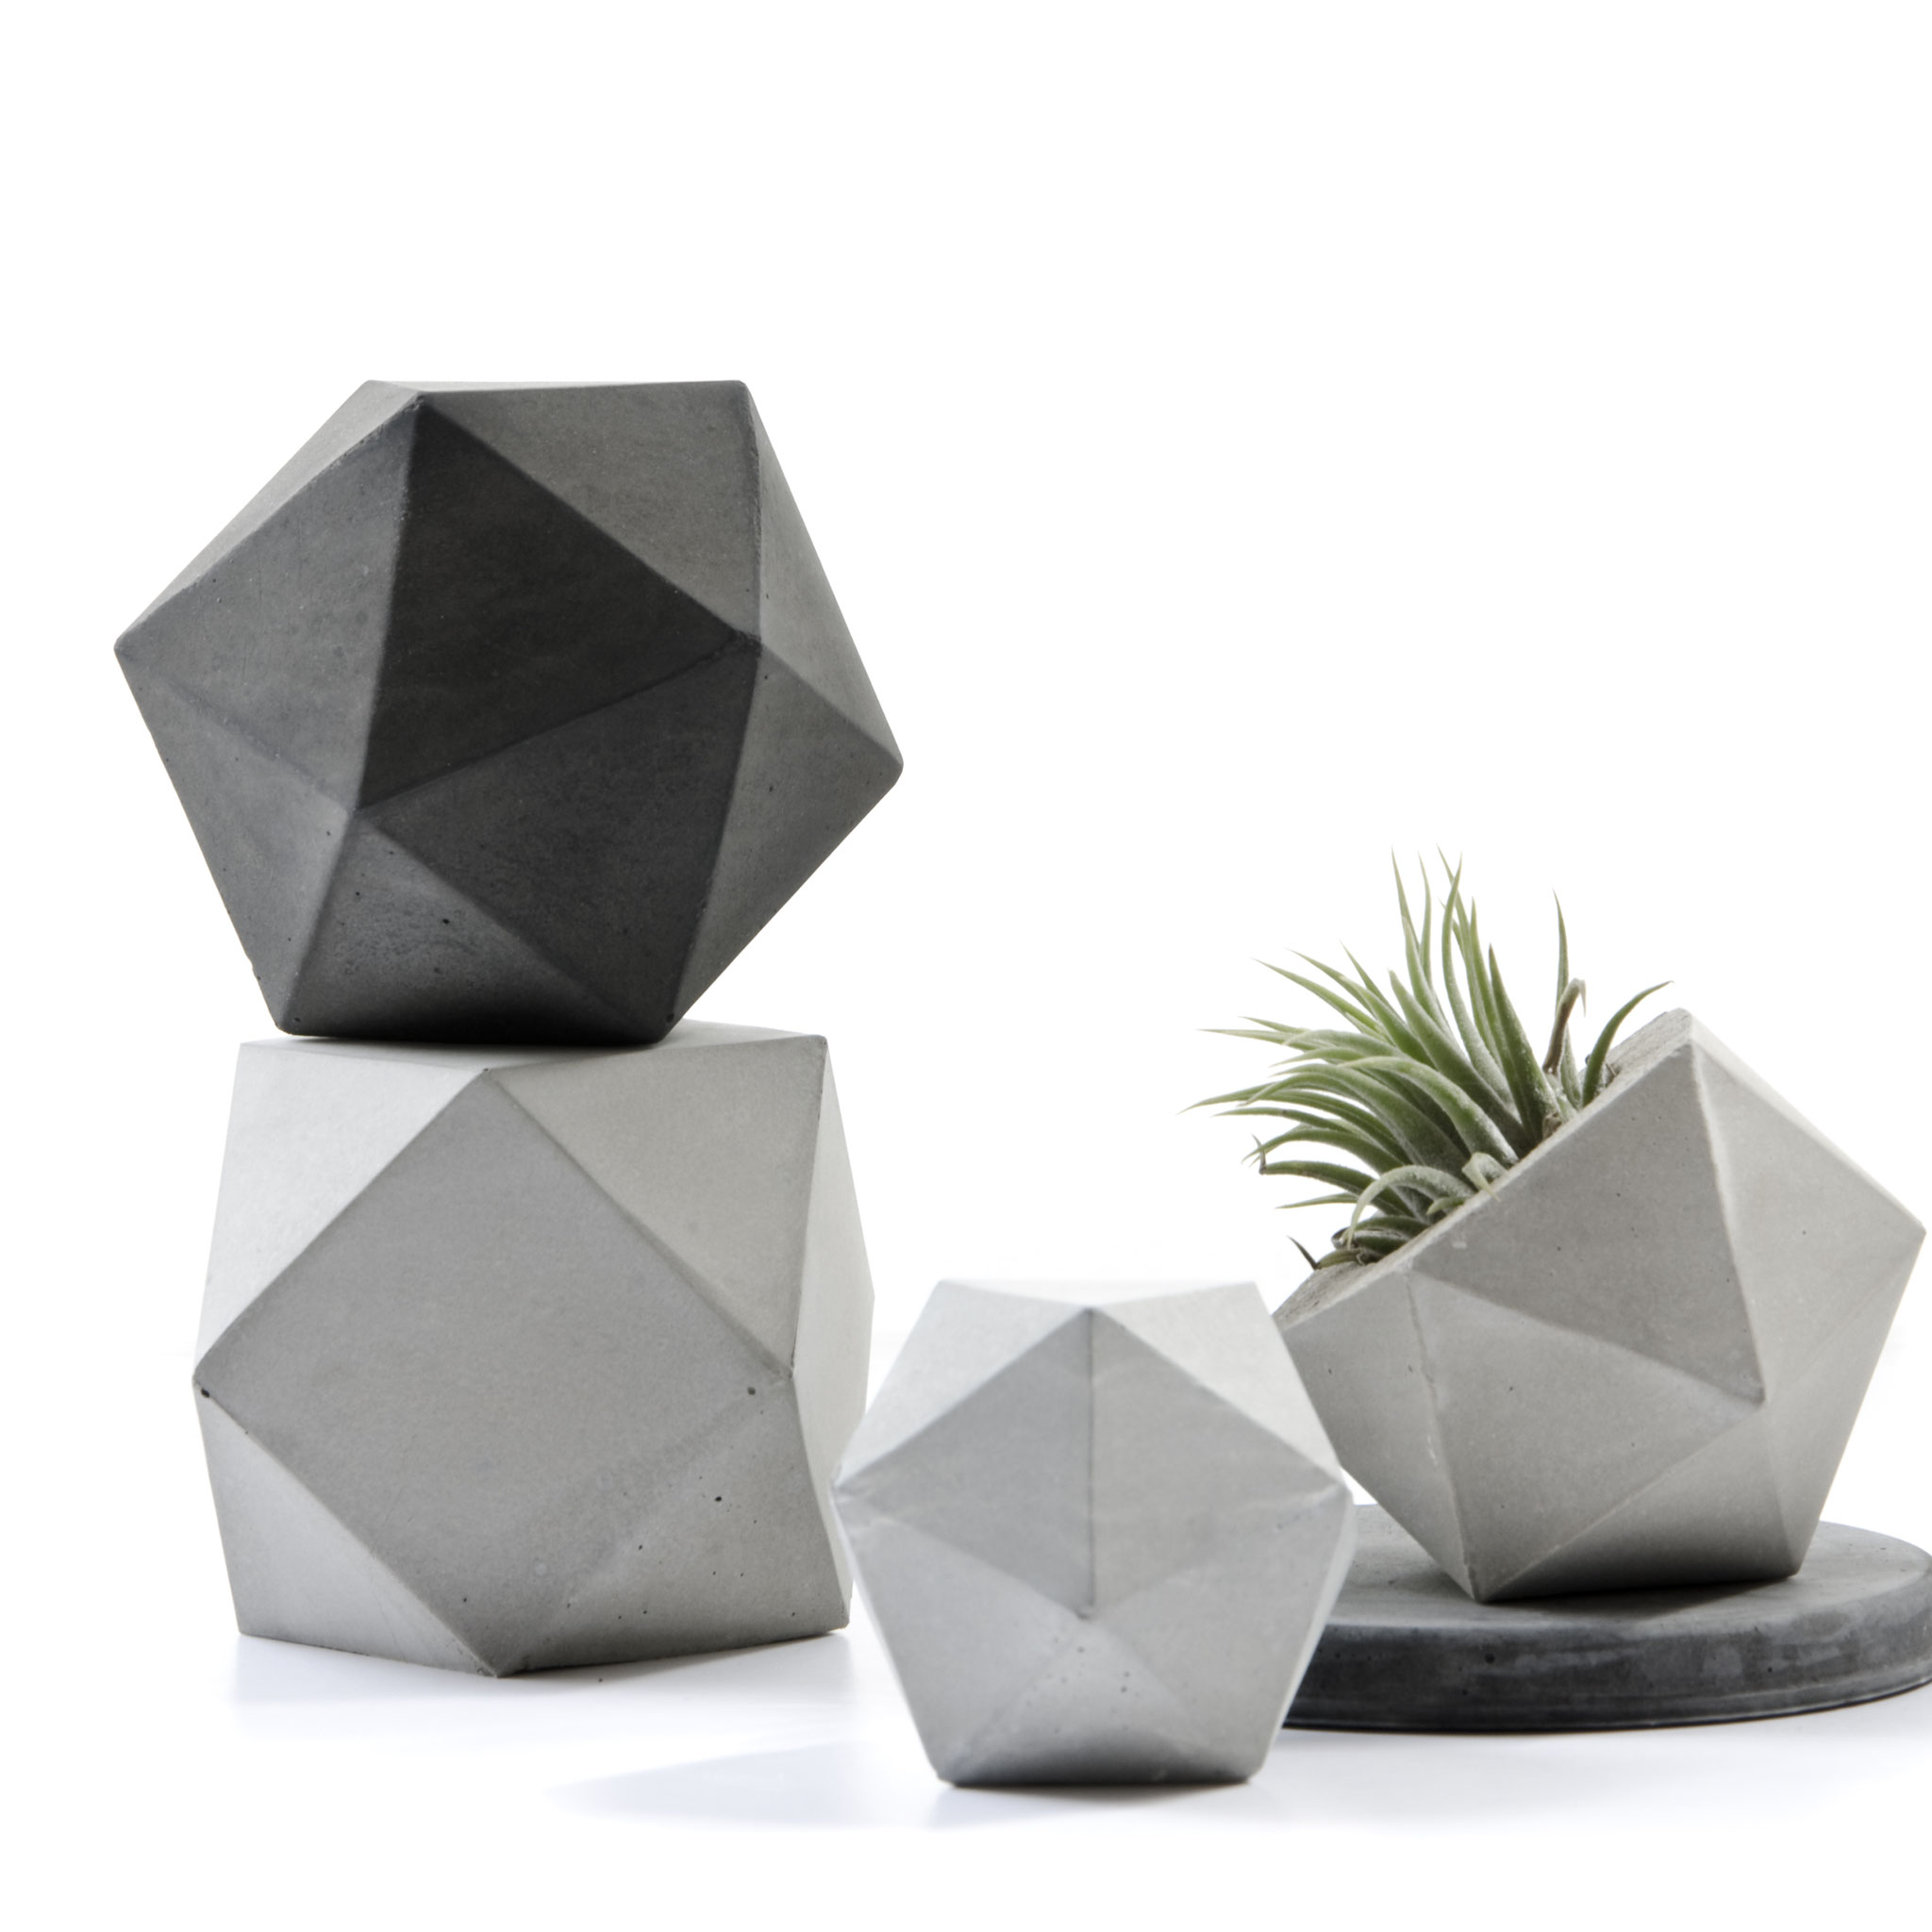 New Geometric Solids